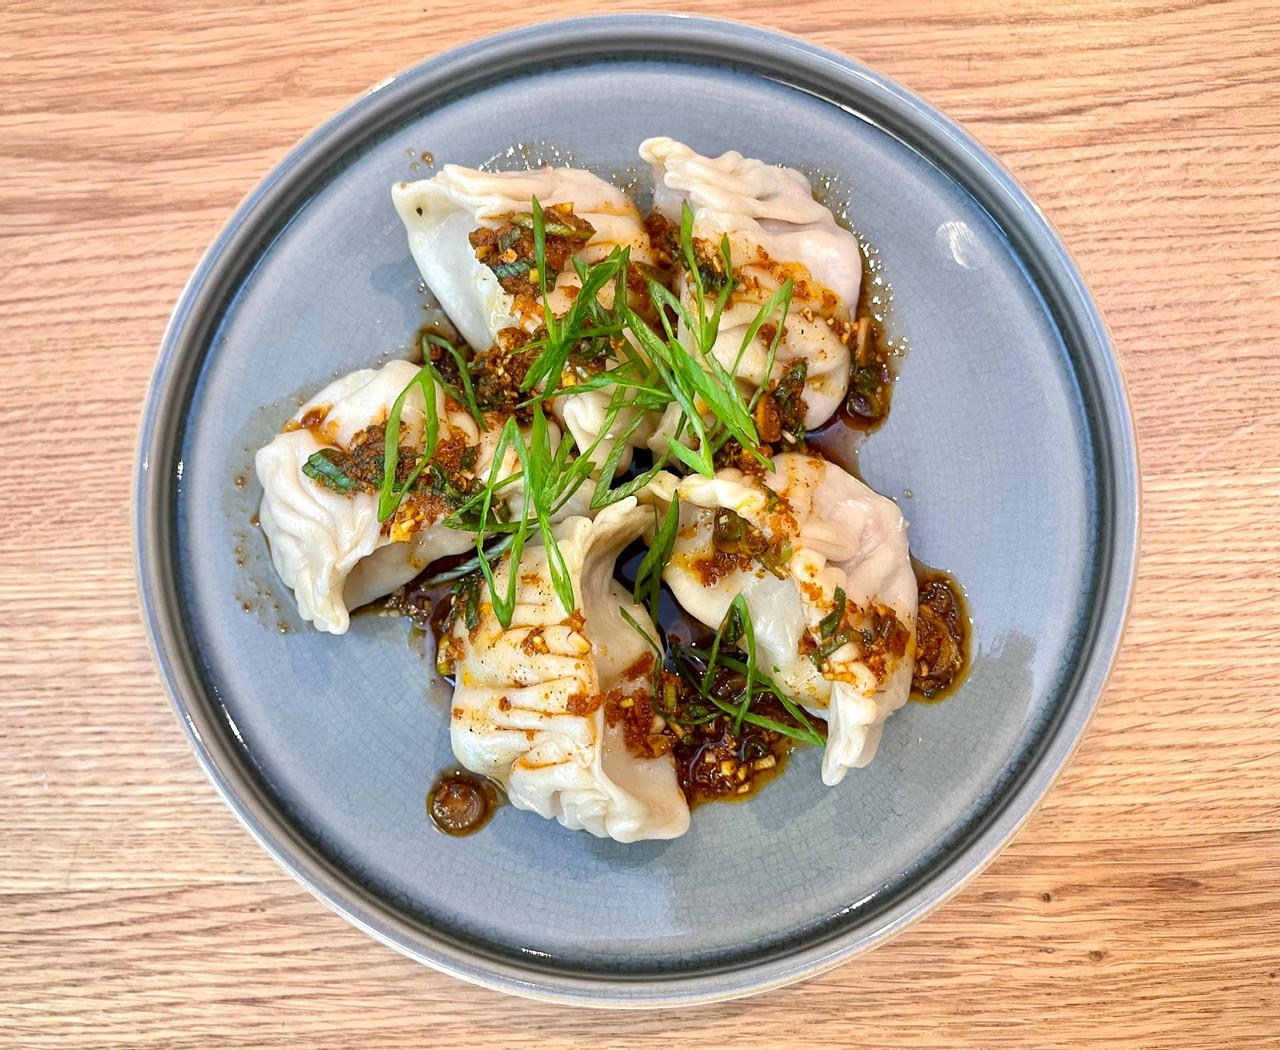 Pork and shrimp dumplings